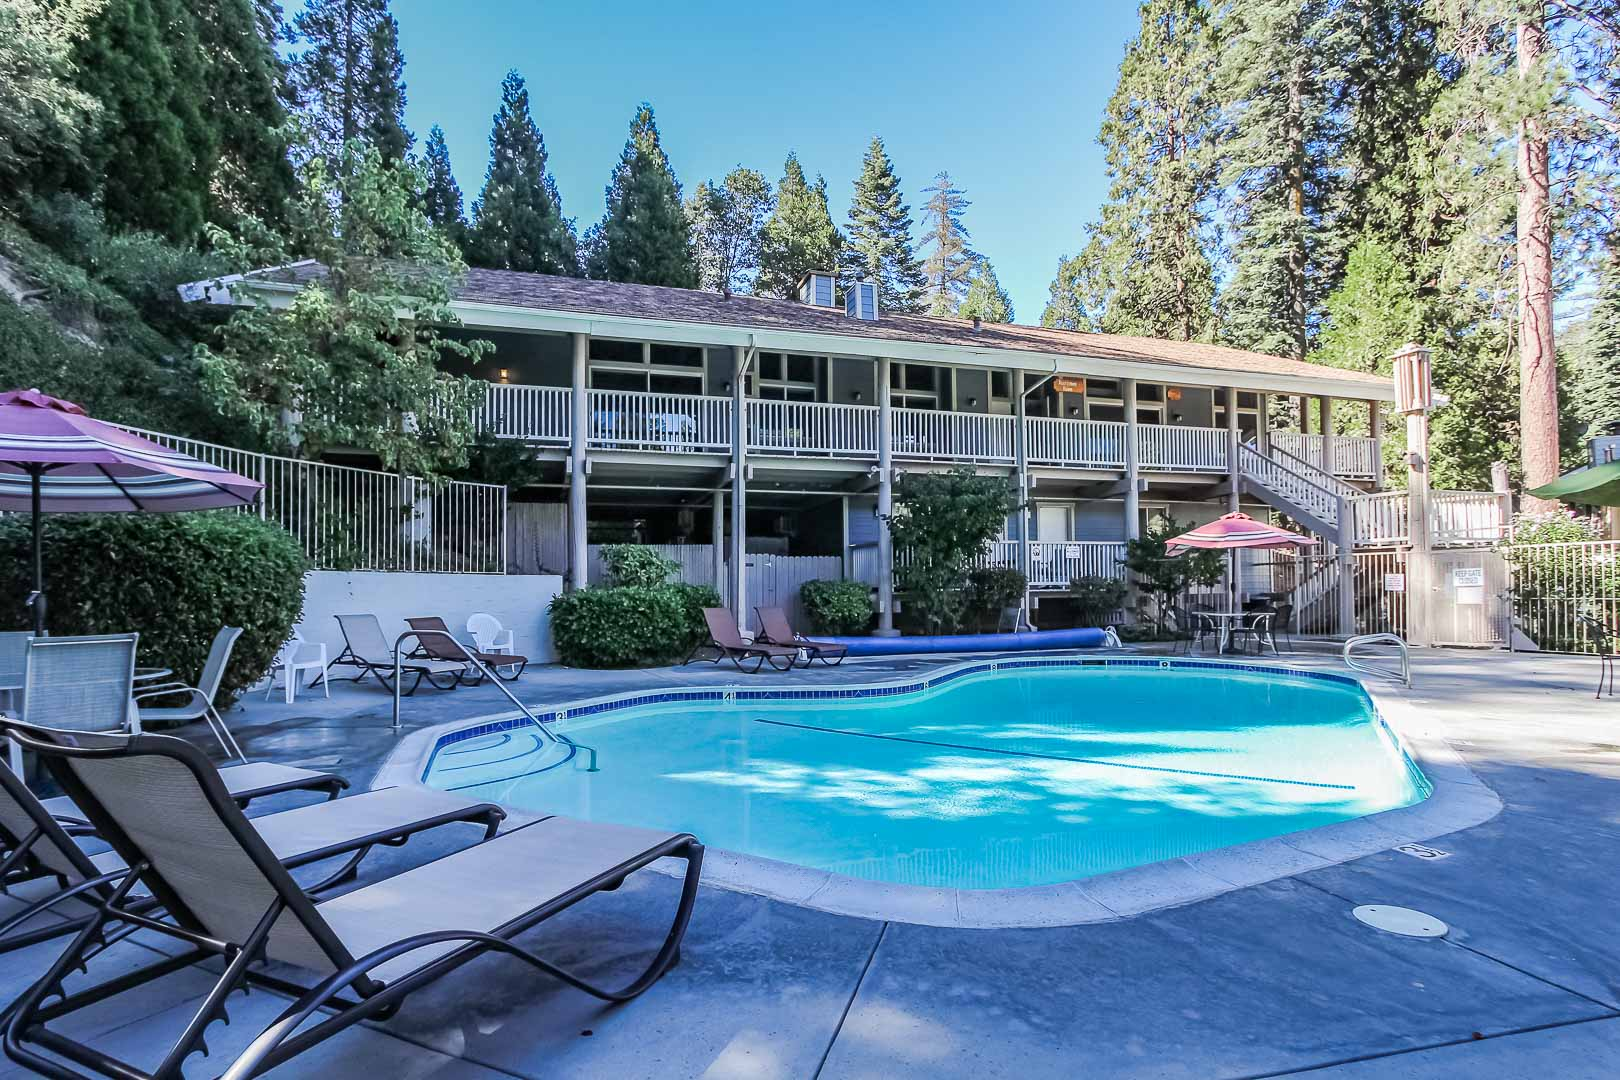 A peaceful view of the outdoor swimming pool at VRI's Lake Arrowhead Chalets in California.